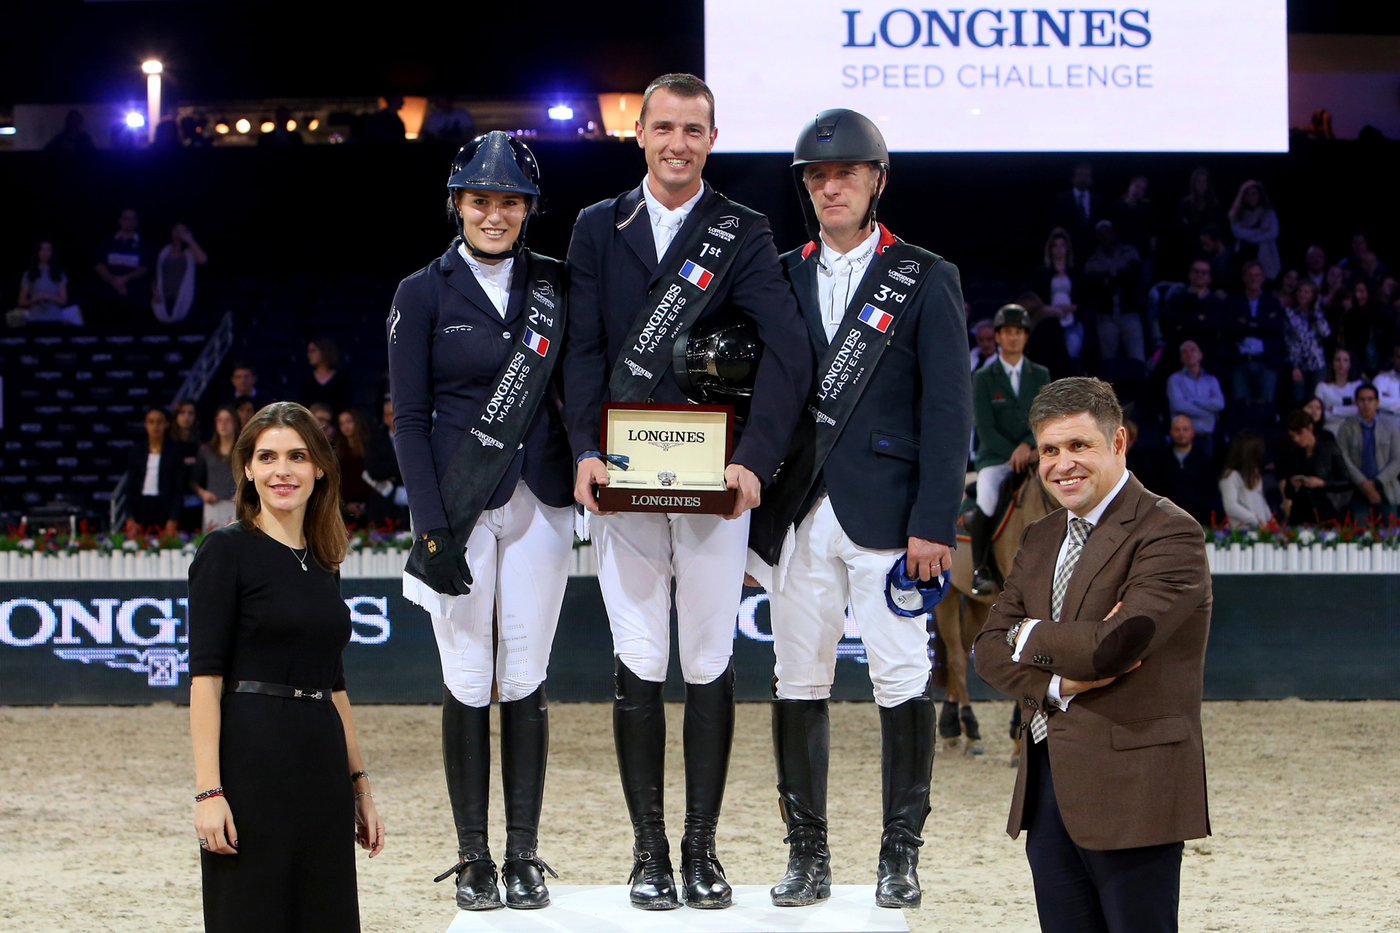 Longines Show Jumping Event: The Longines Masters of Paris: four days of high level show jumping competition in a glamorous atmosphere 6